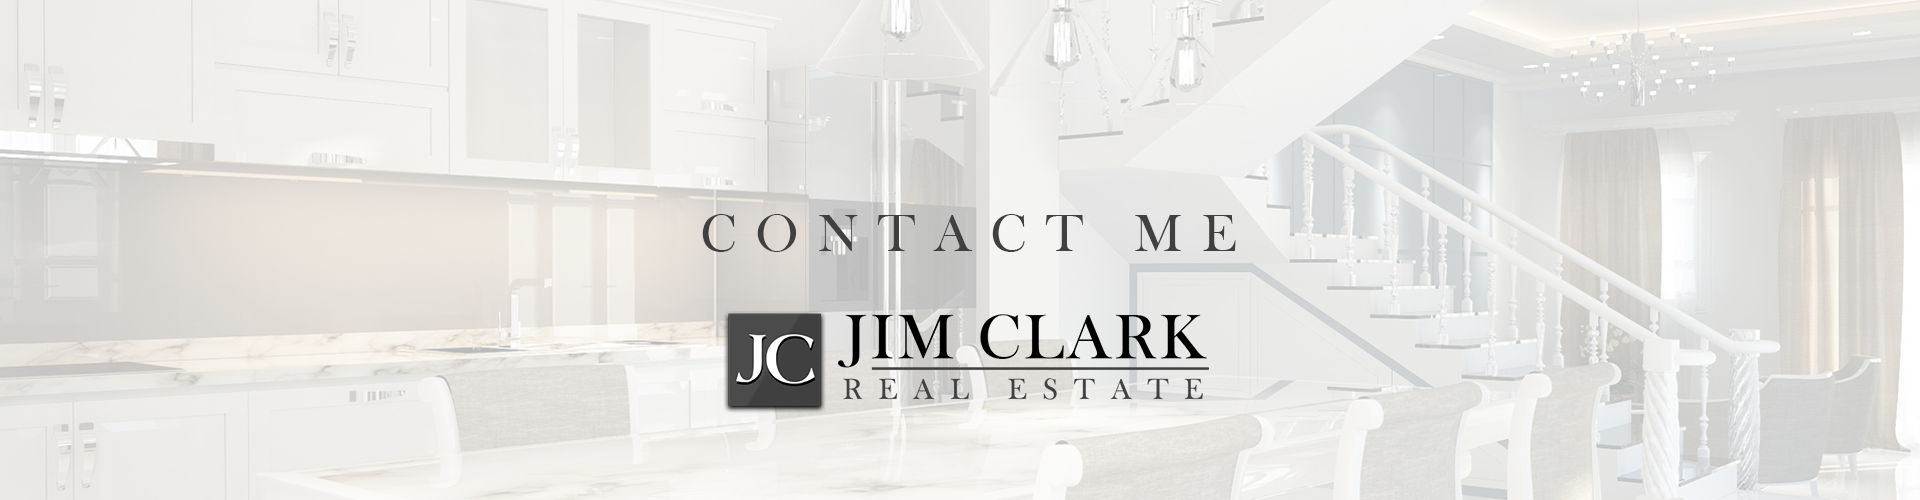 Jim Clark Real Estate California